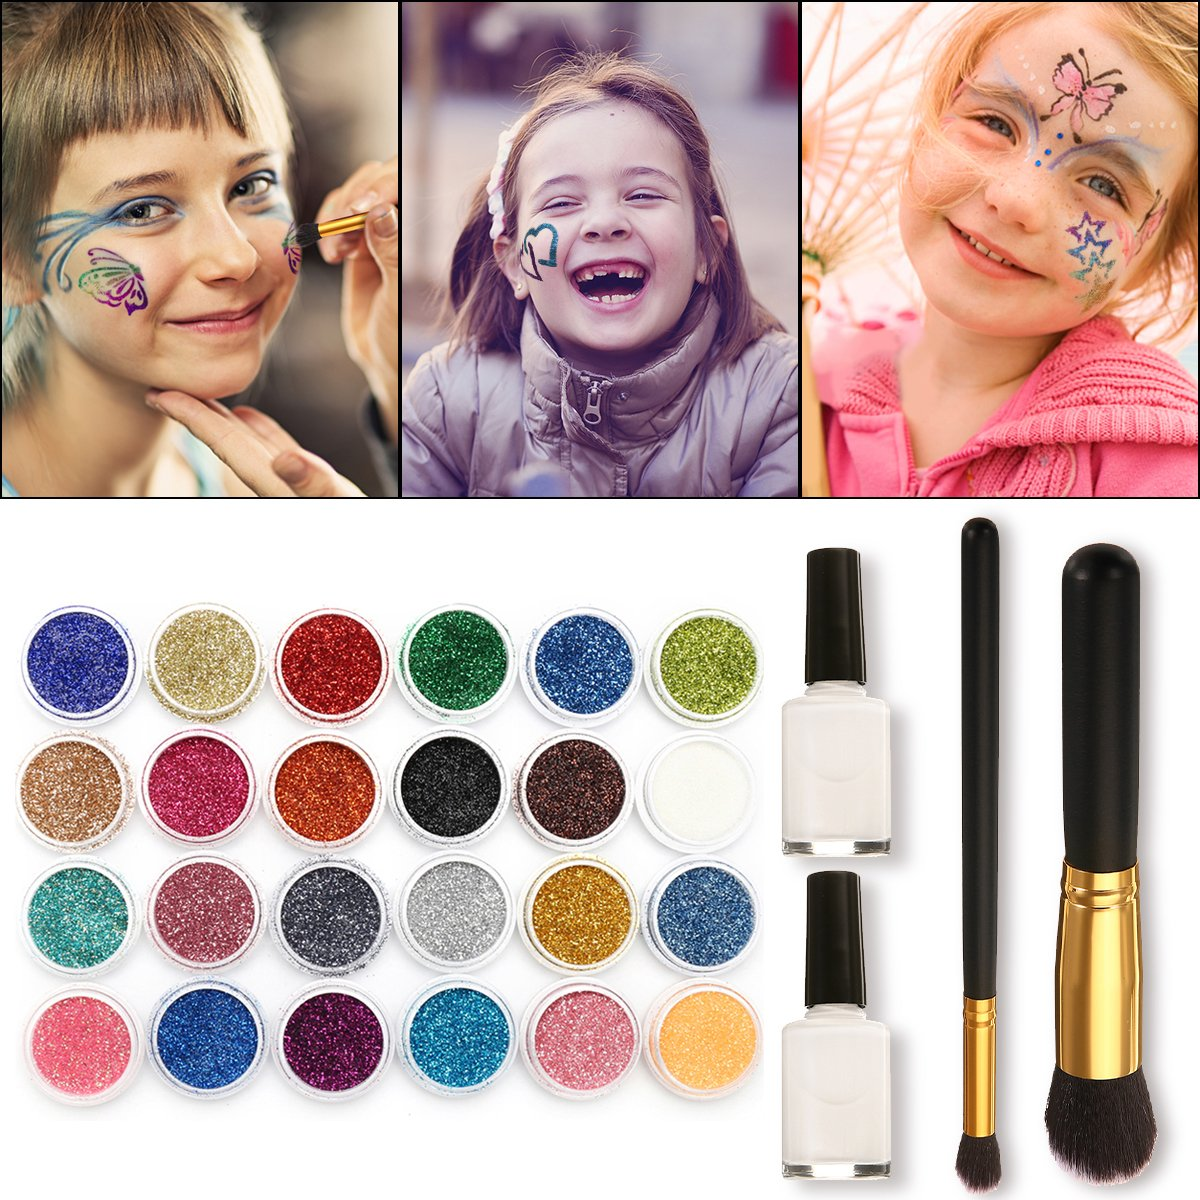 Skymore Glitter Tattoo KitTemporary Tattoos Face Painting Make up Body Glitter Body Art Design Kids Teenager AdultHalloweenWith 24 Colour Glitter108 Sheet Uniquely Themed Tattoo Stencil